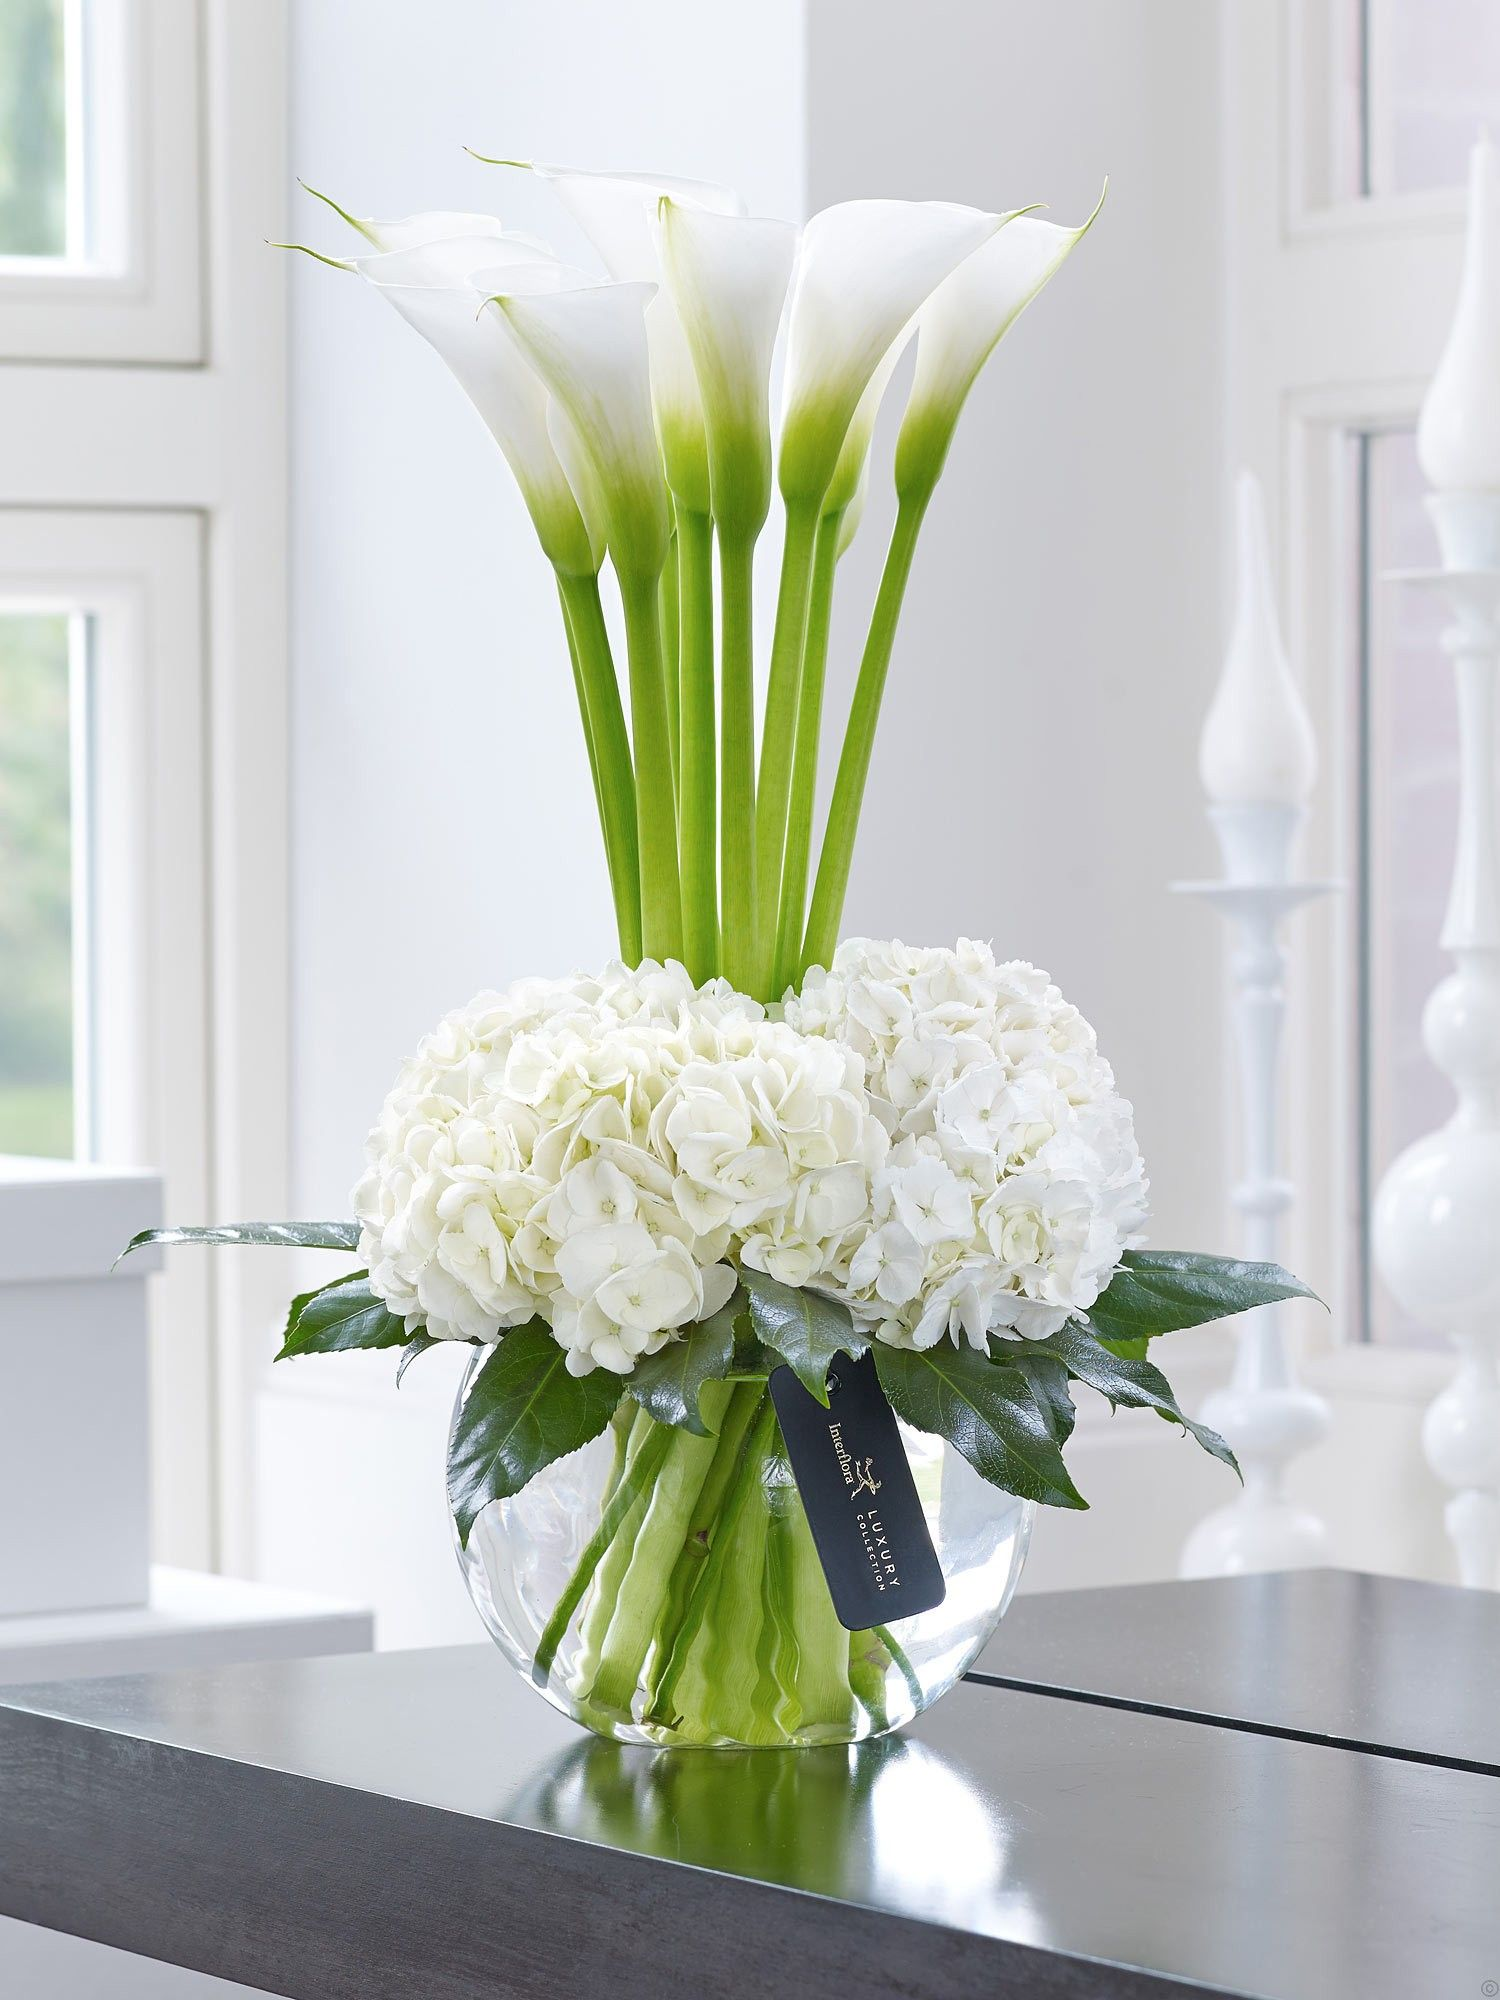 Related image whites pinterest calla lilies hydrangea and flowers luxury calla lily hydrangea vase this contemporary designer arrangement is right on trend weve chosen ultra fashionable calla lilies in pristine izmirmasajfo